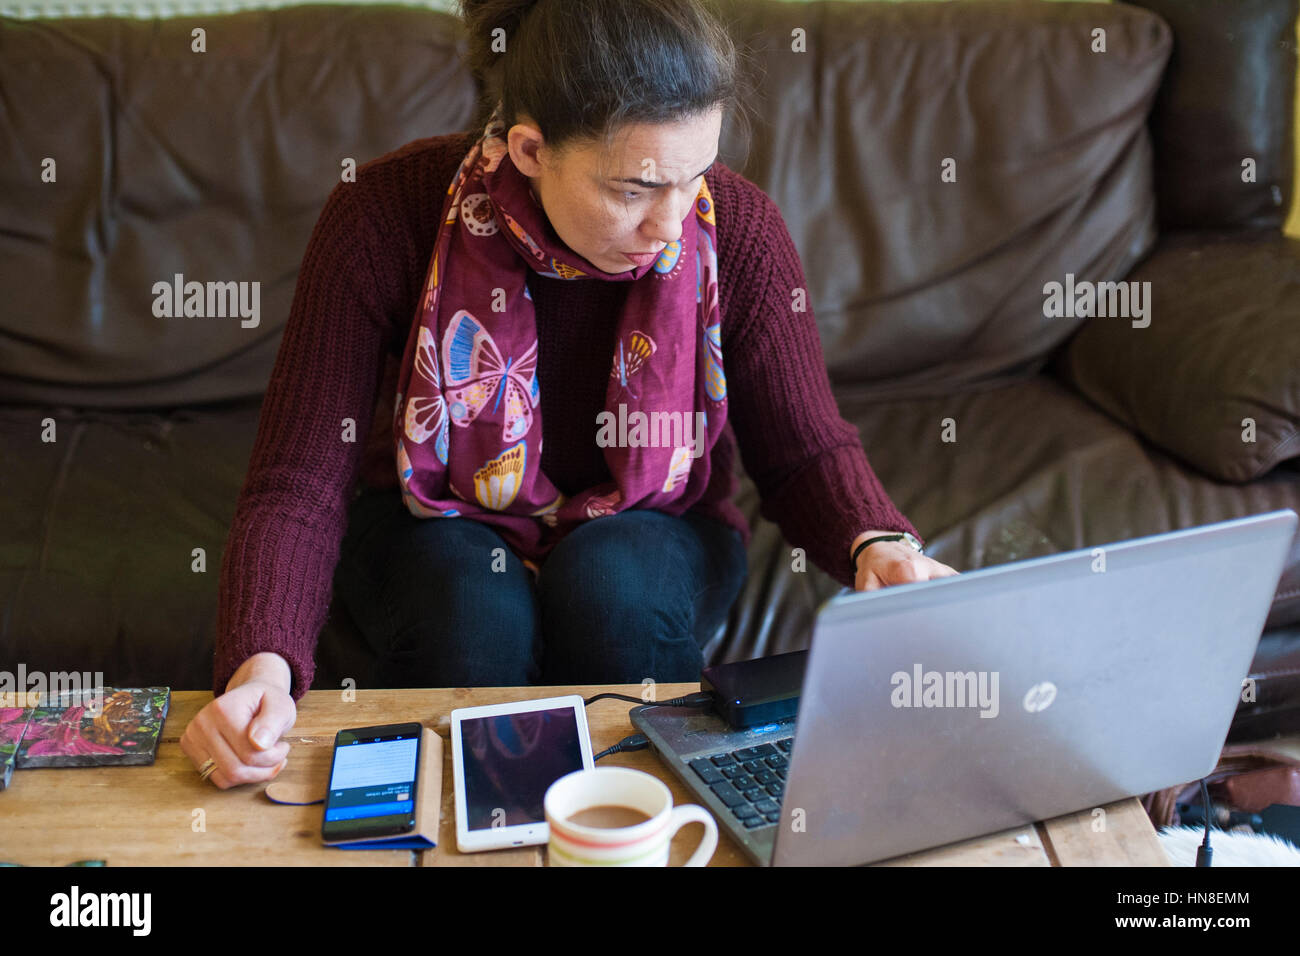 A woman in her thirties working from home with a laptop, mobile phone and tablet on coffee table - Stock Image